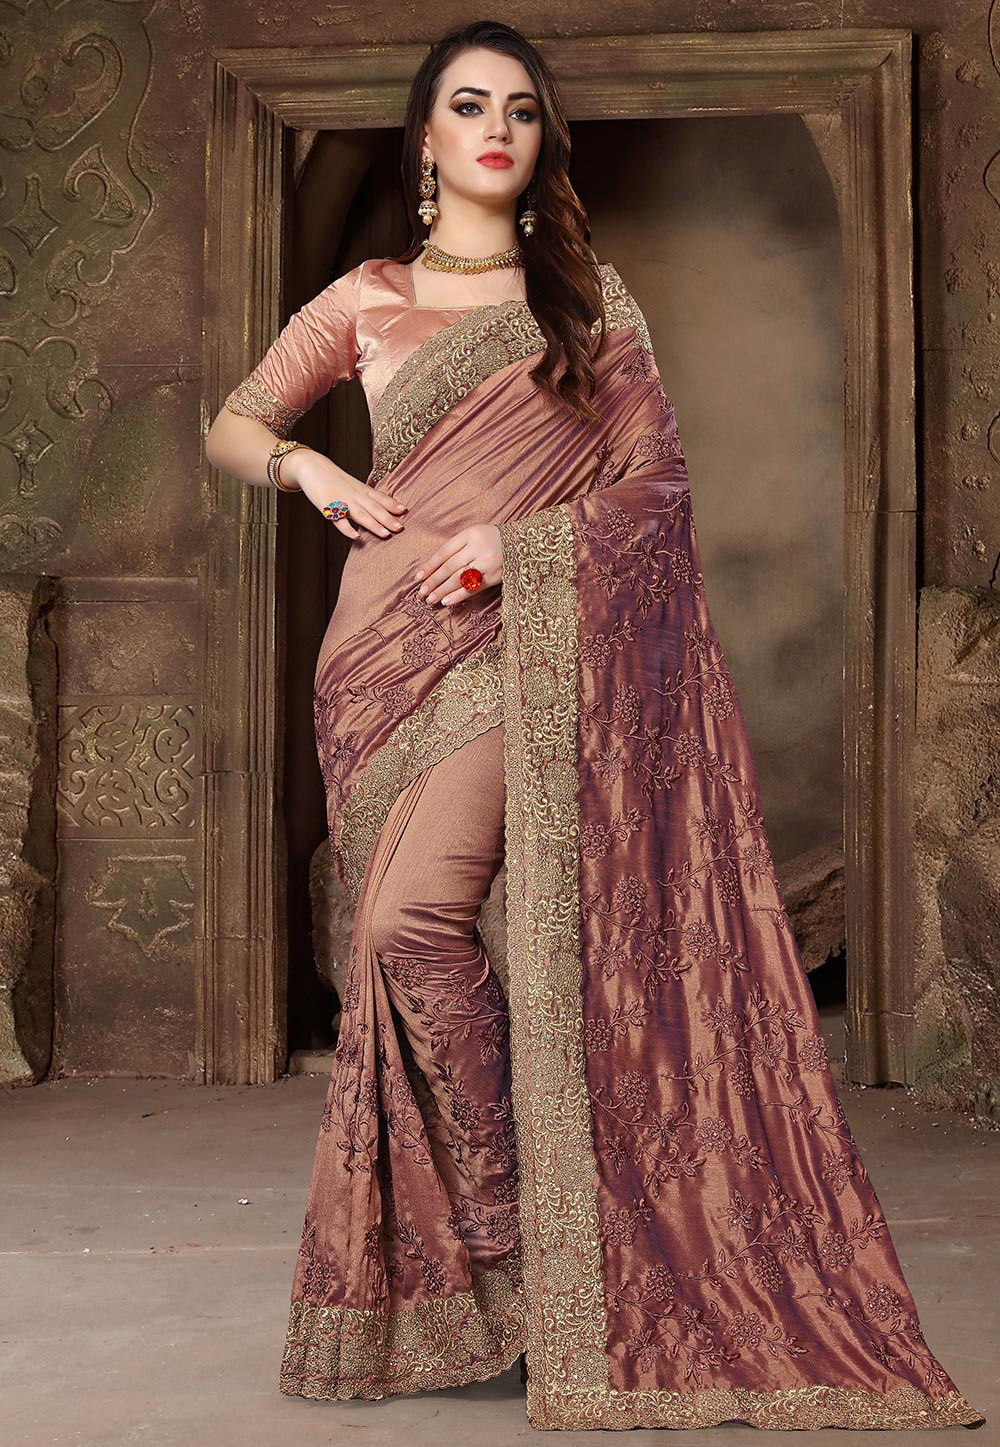 82fe33db5fd785 ... Embroidered Art Silk Saree in Rose Gold. Zoom